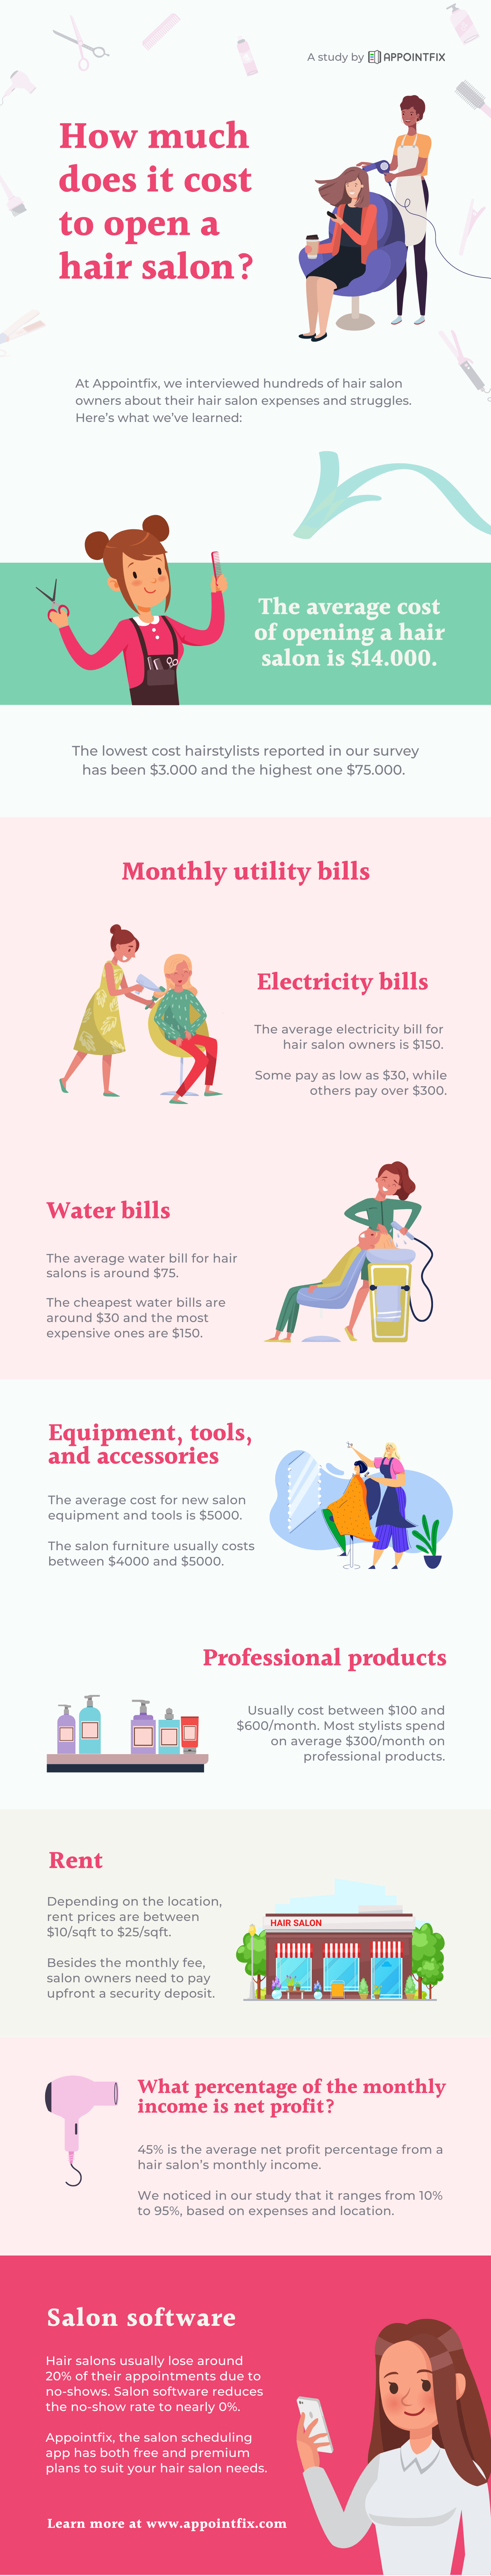 hair salon opening costs infographic